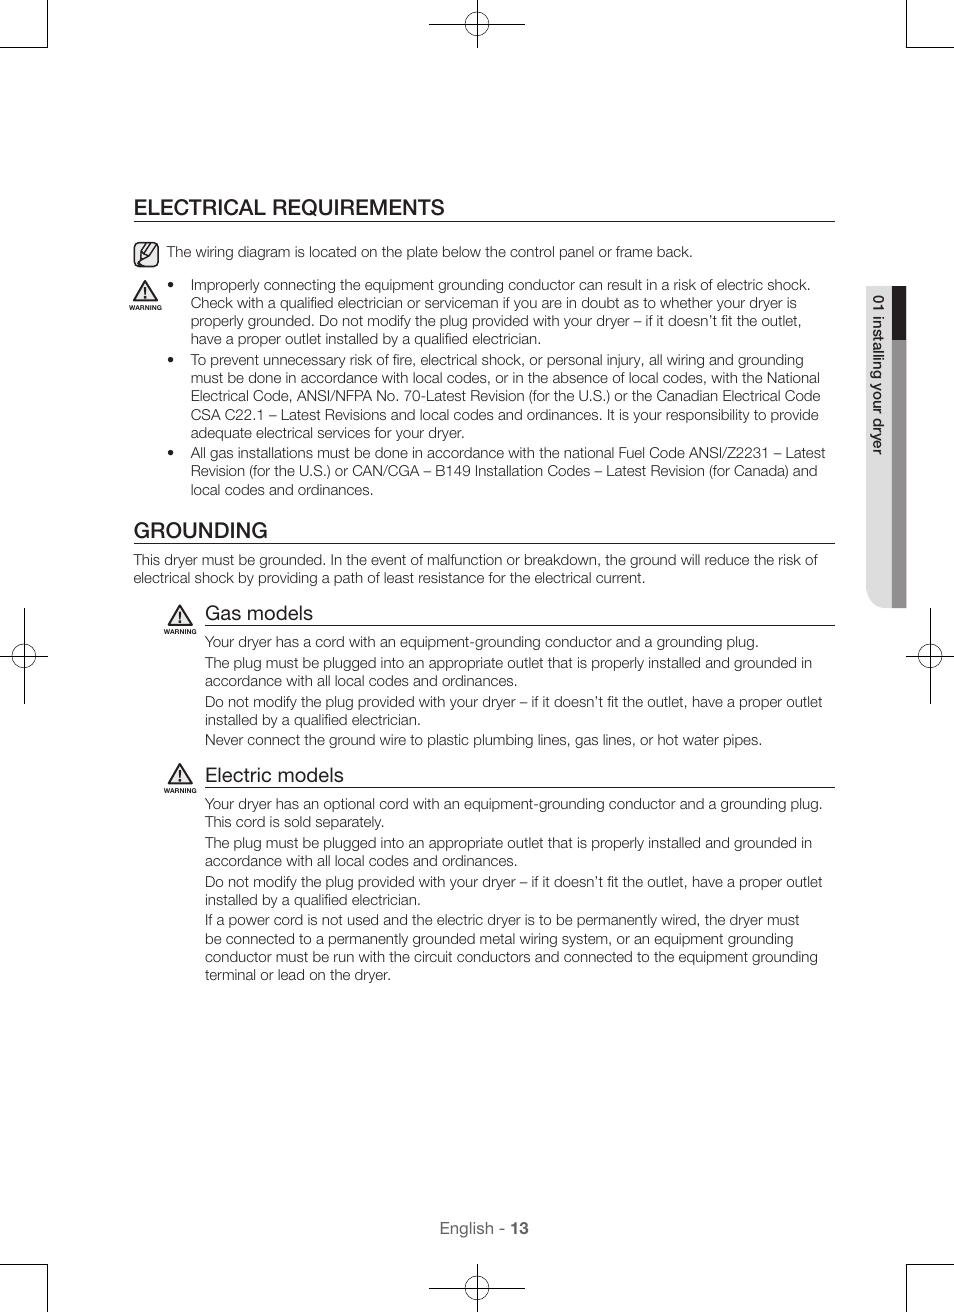 Electrical requirements, Grounding, Gas models | Samsung DV56H9100EW ...